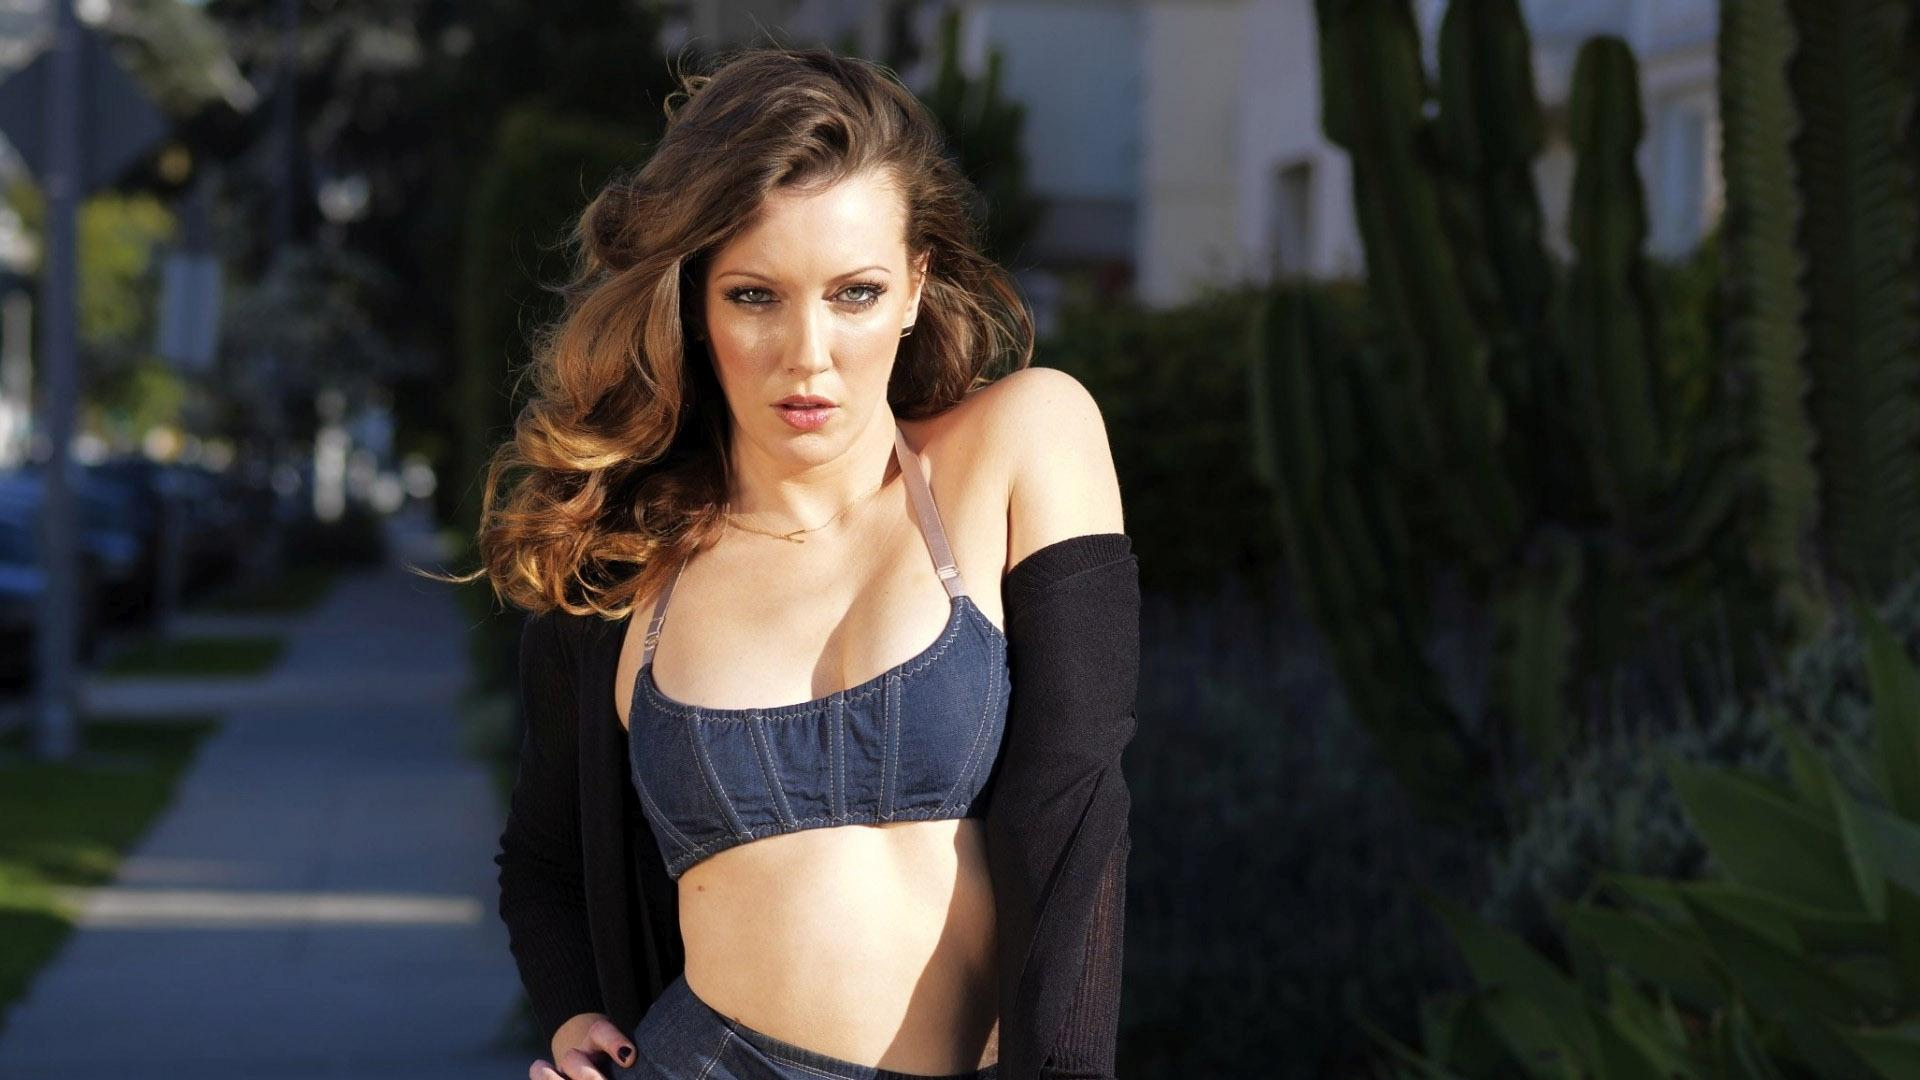 Katie Cassidy Photo Gallery: Hot Photos, Images And Wallpapers of ...